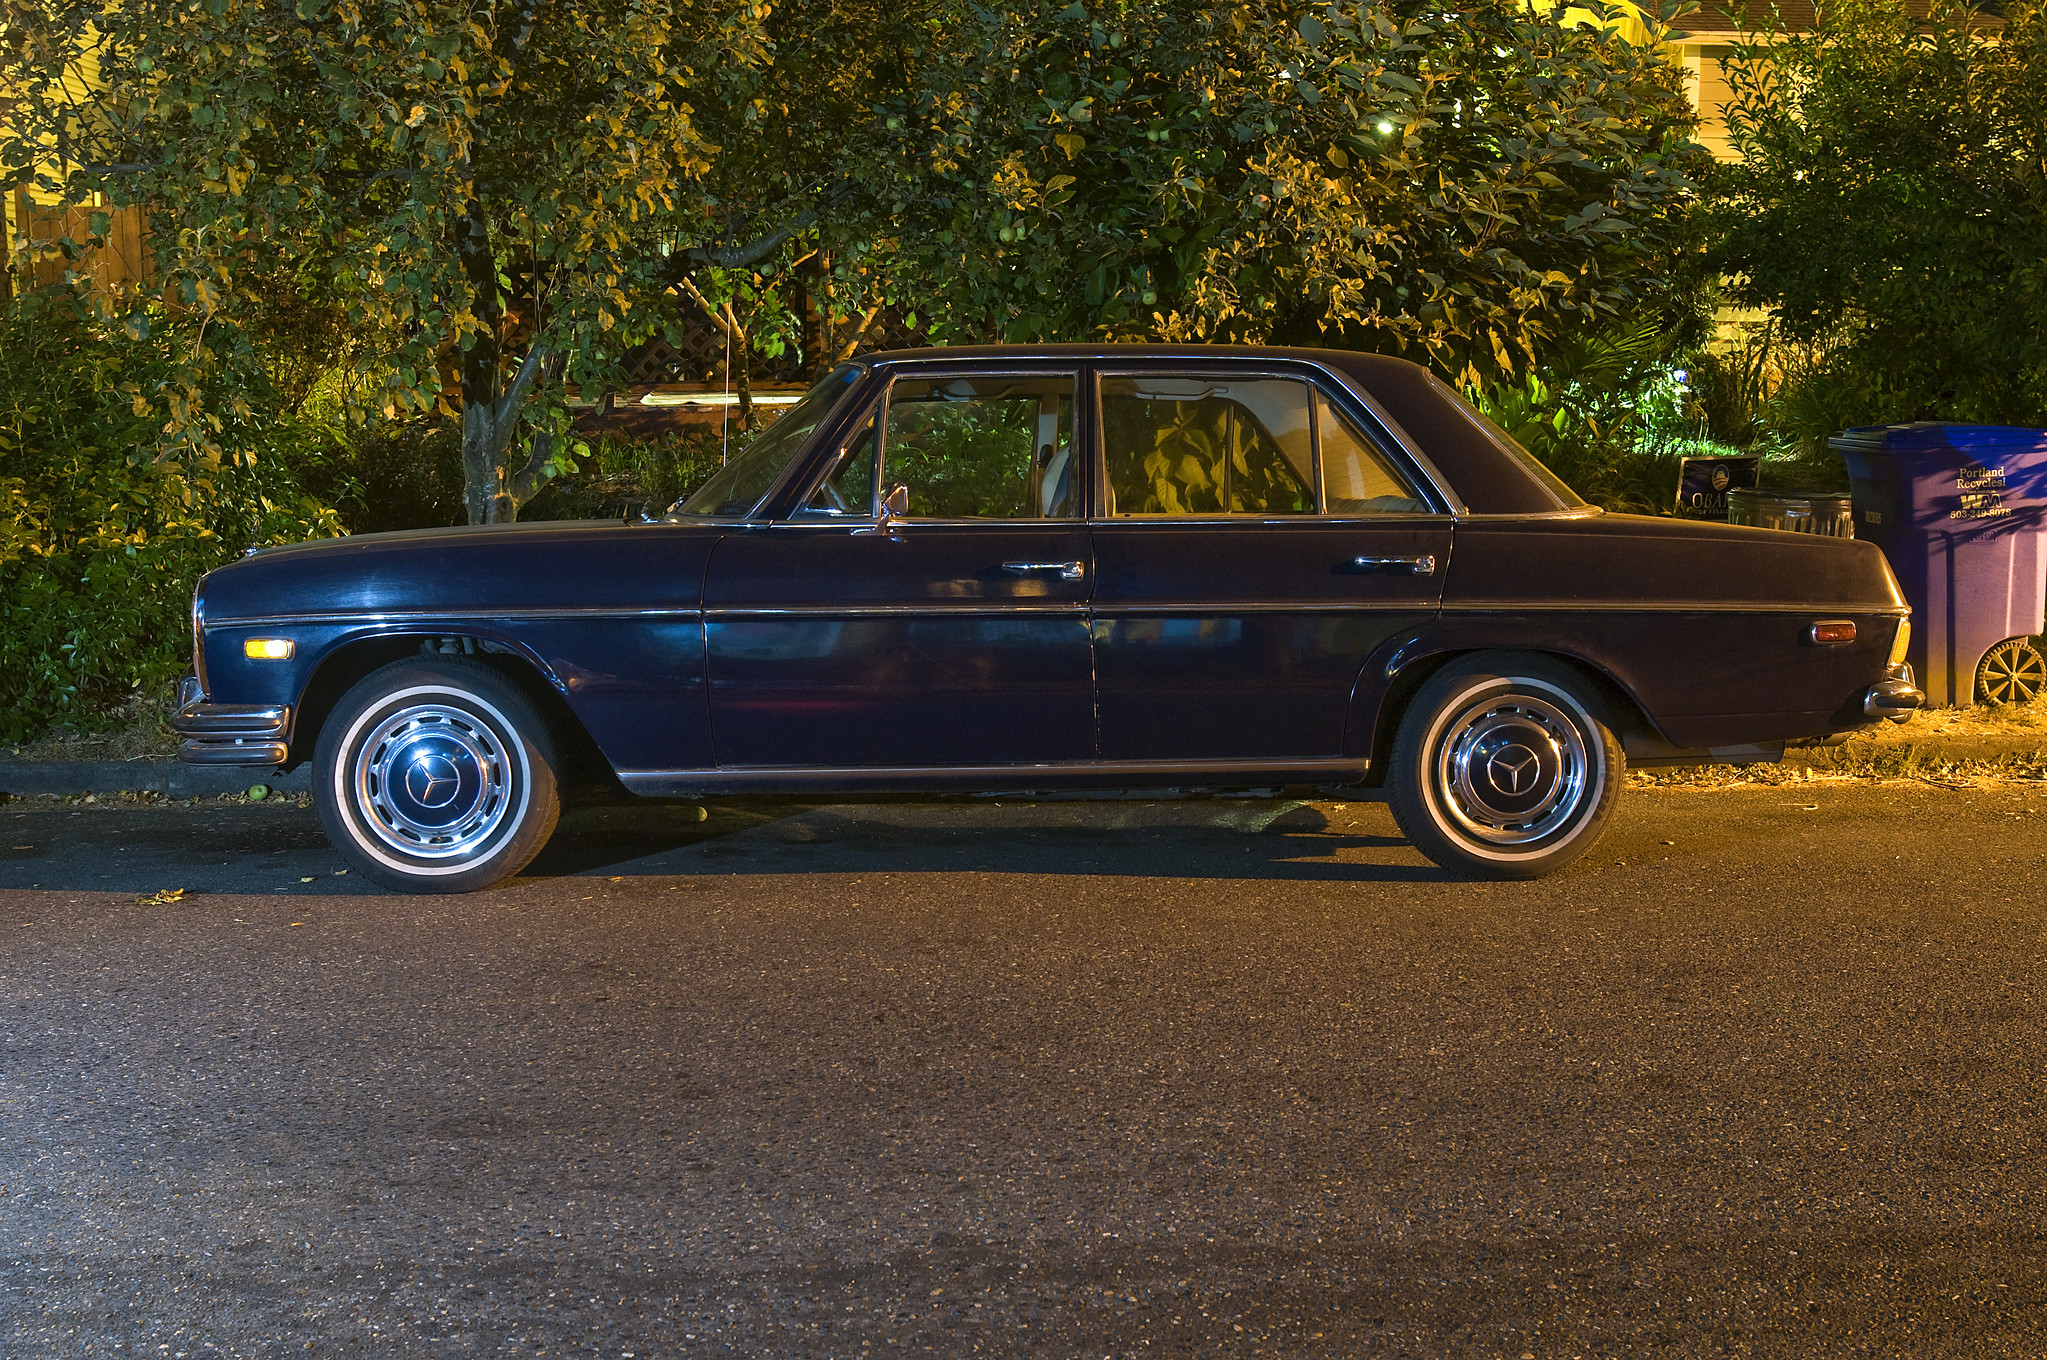 1970 mercedes benz 250 se flickr photo sharing for Mercedes benz route 17